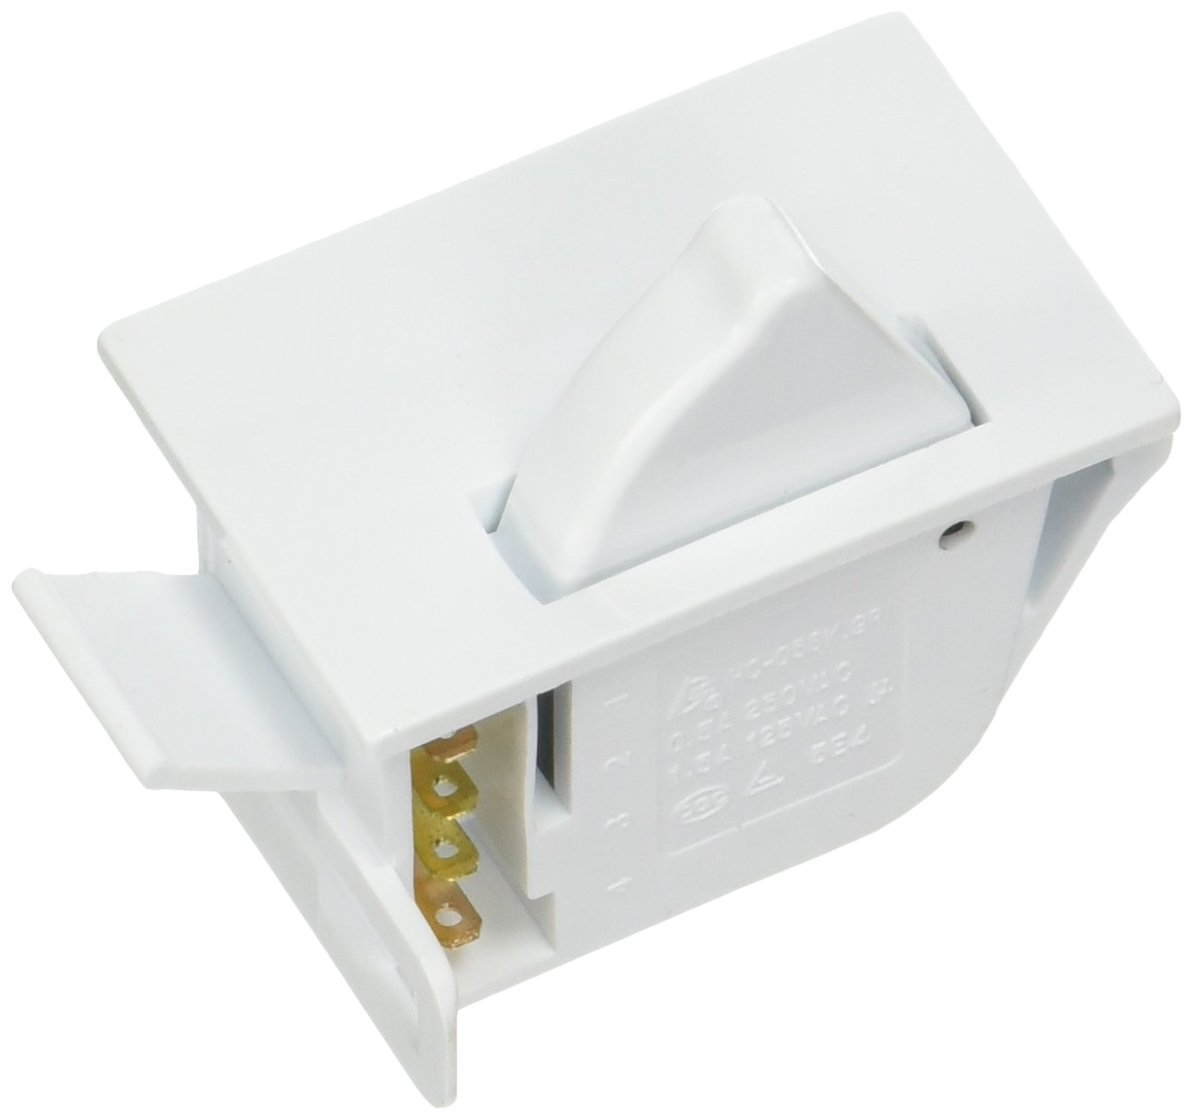 OEM Mania Authorized Factory OEM Replacement DA34-00041A Light Door Switch Compatible with Samsung Refrigerator